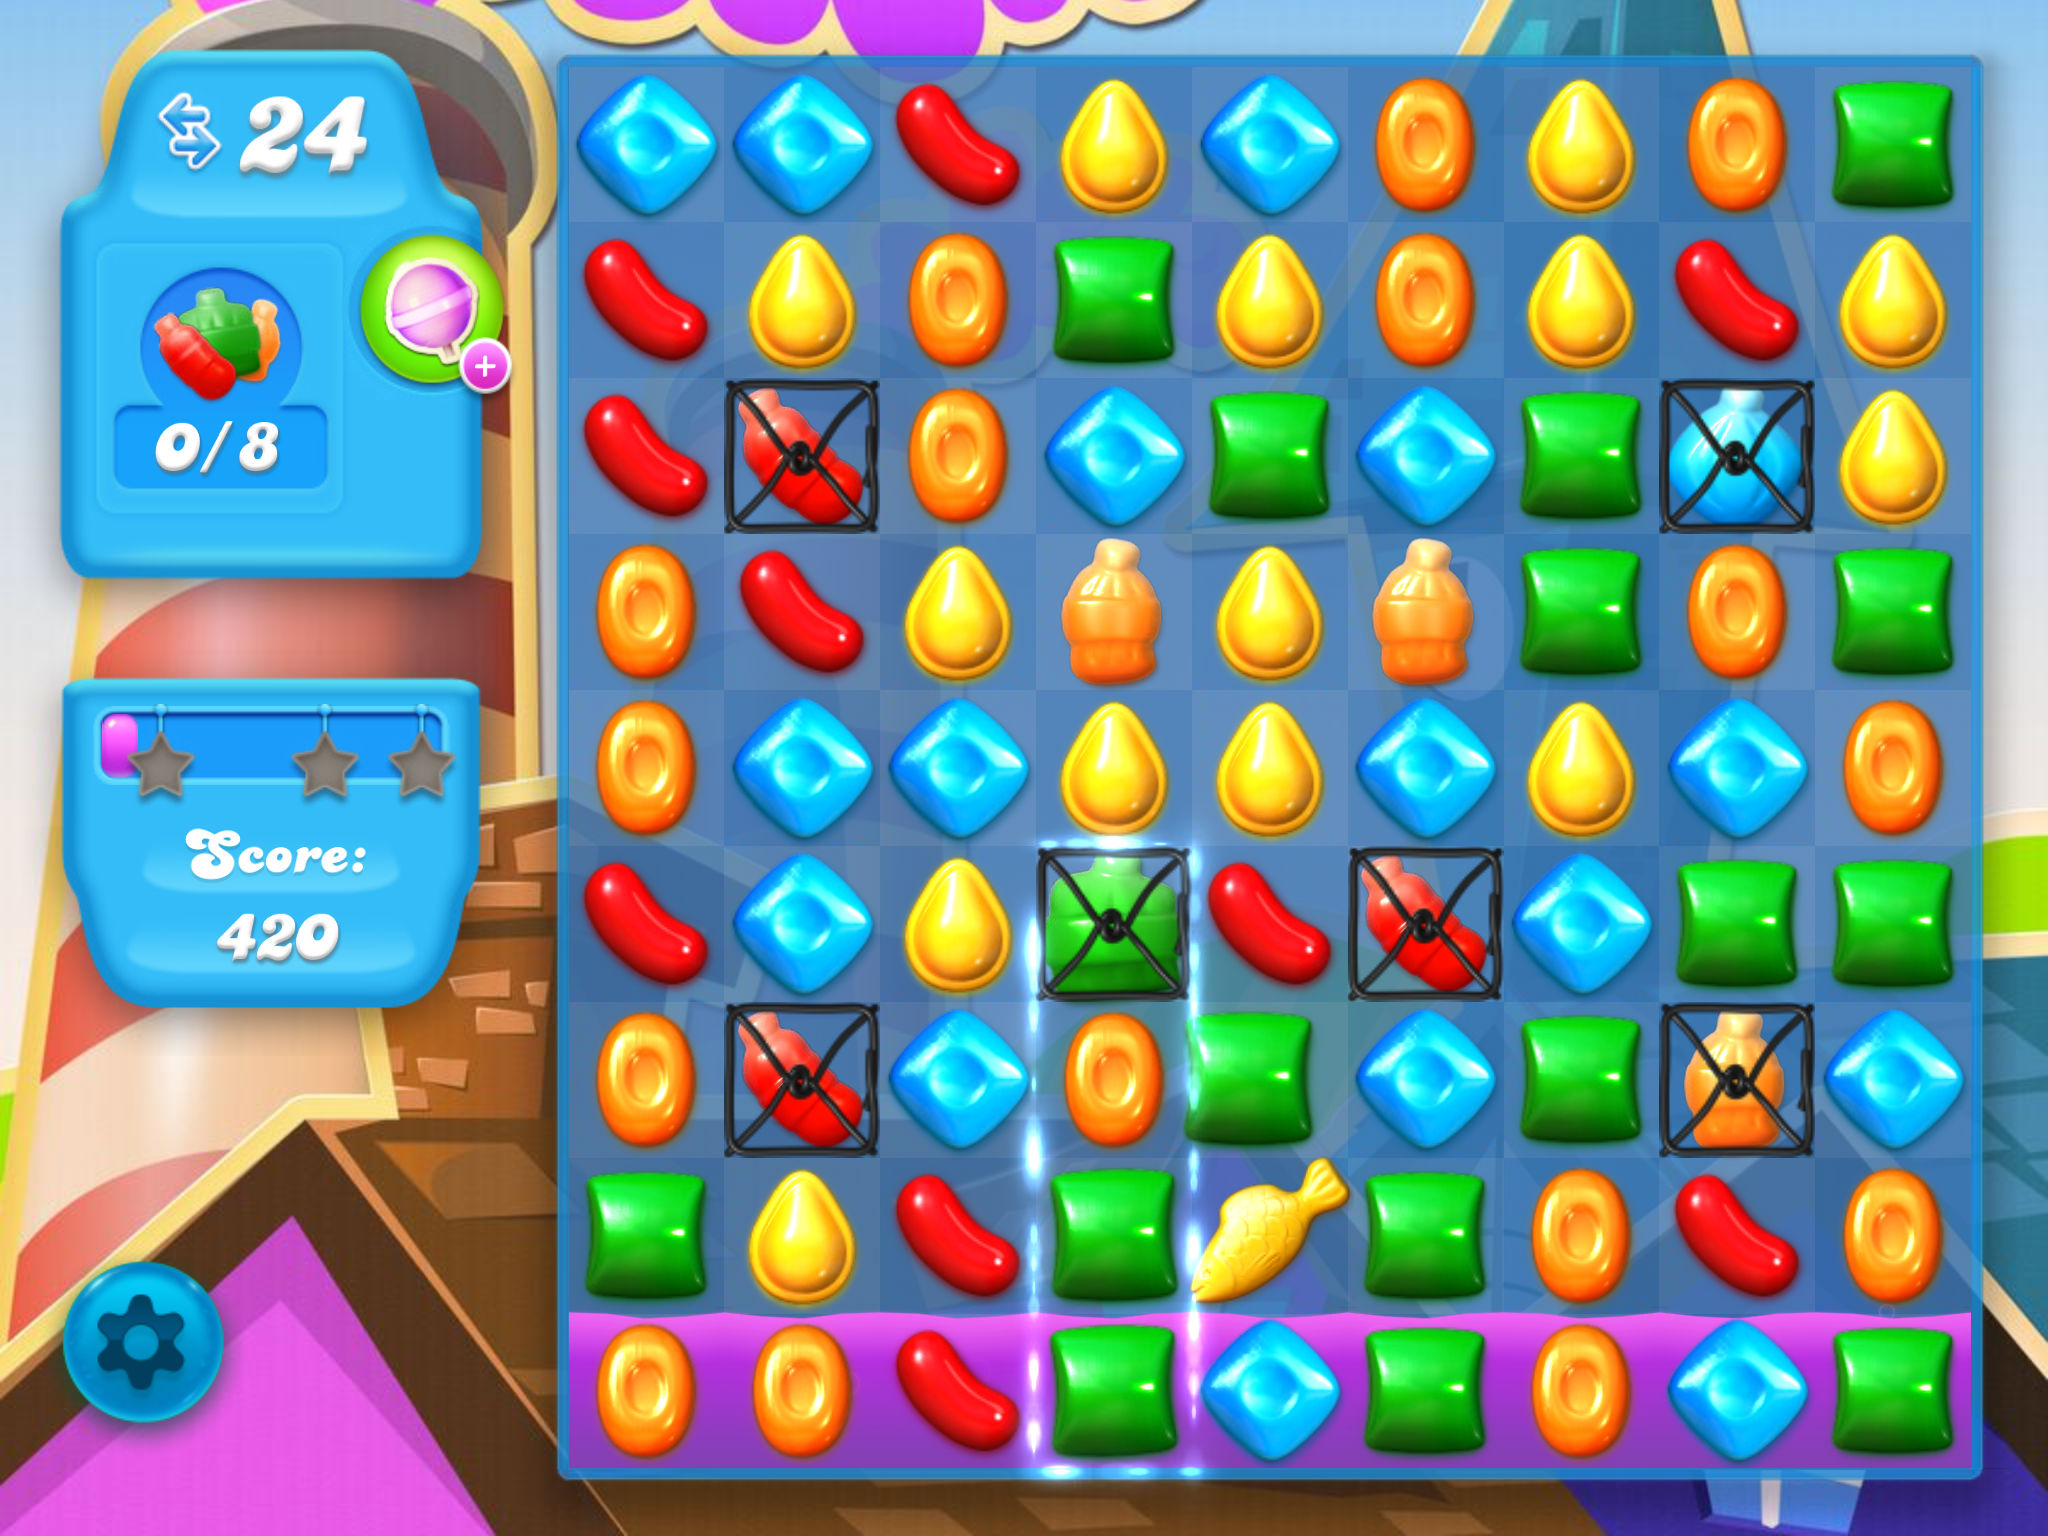 Candy crush soda saga tips hints and strategies page 2 for Candy crush fish